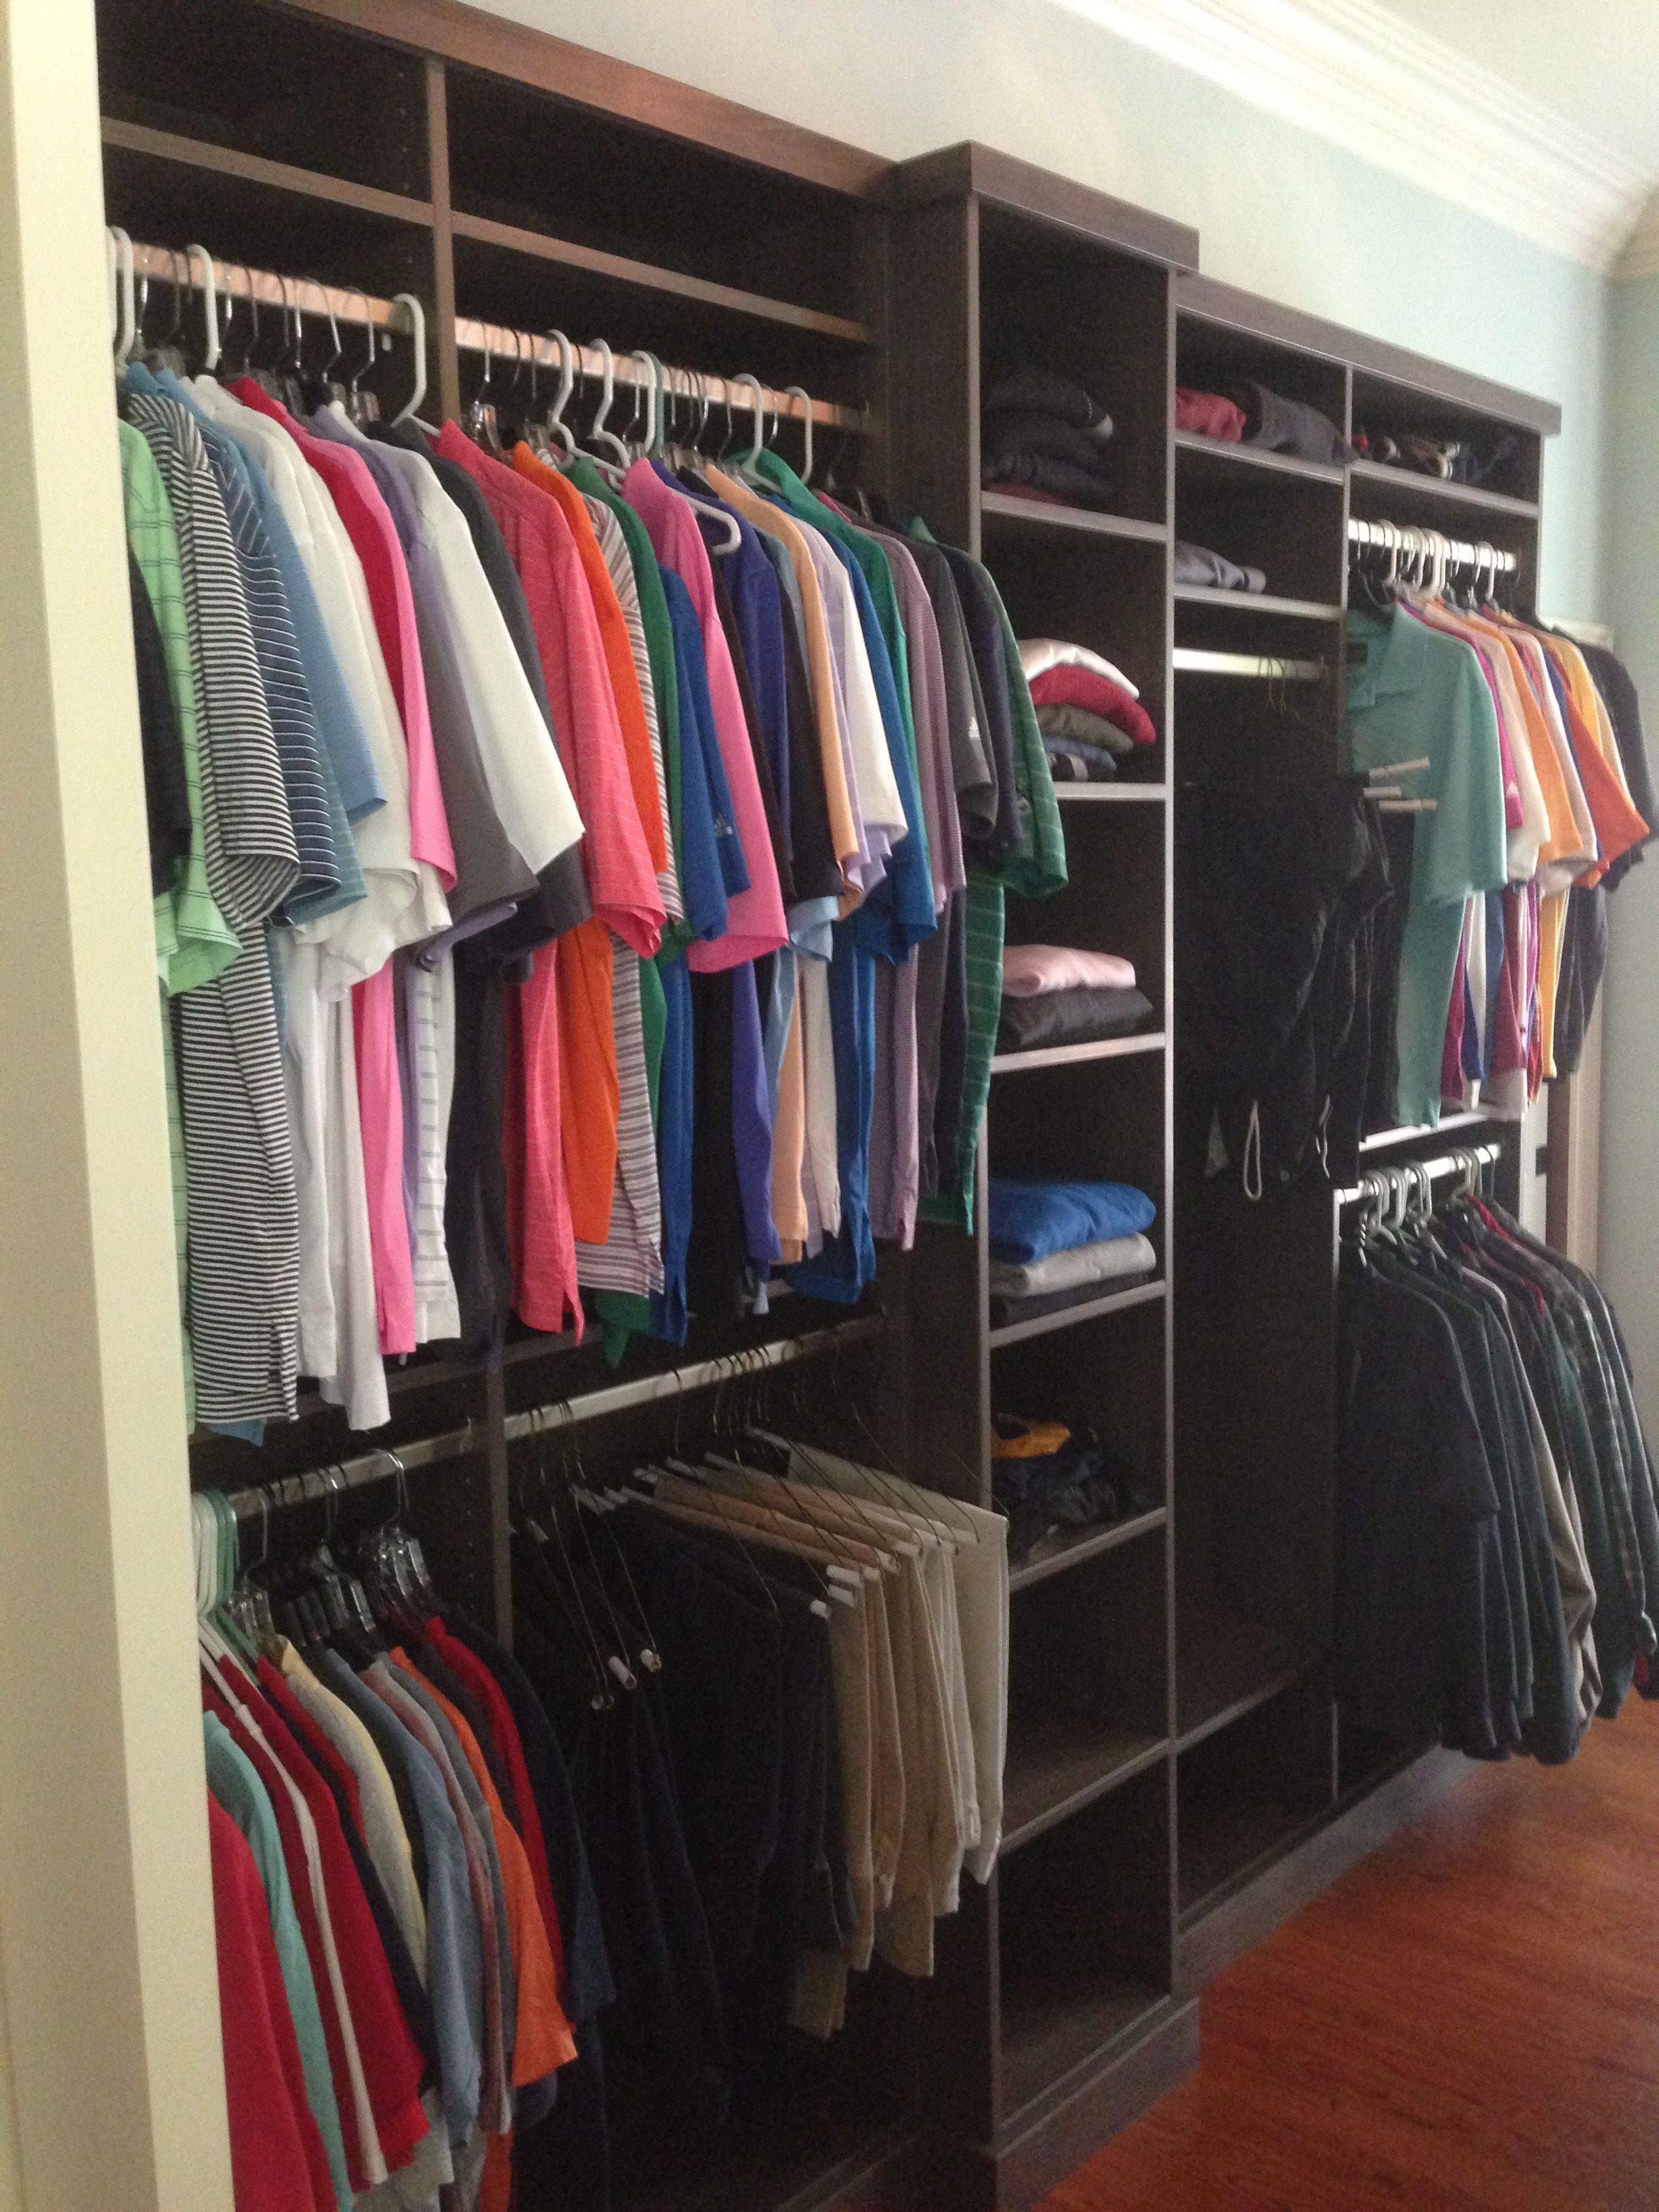 Delicieux Closet Creations Raleigh, N.C. Built This Custom Closet!